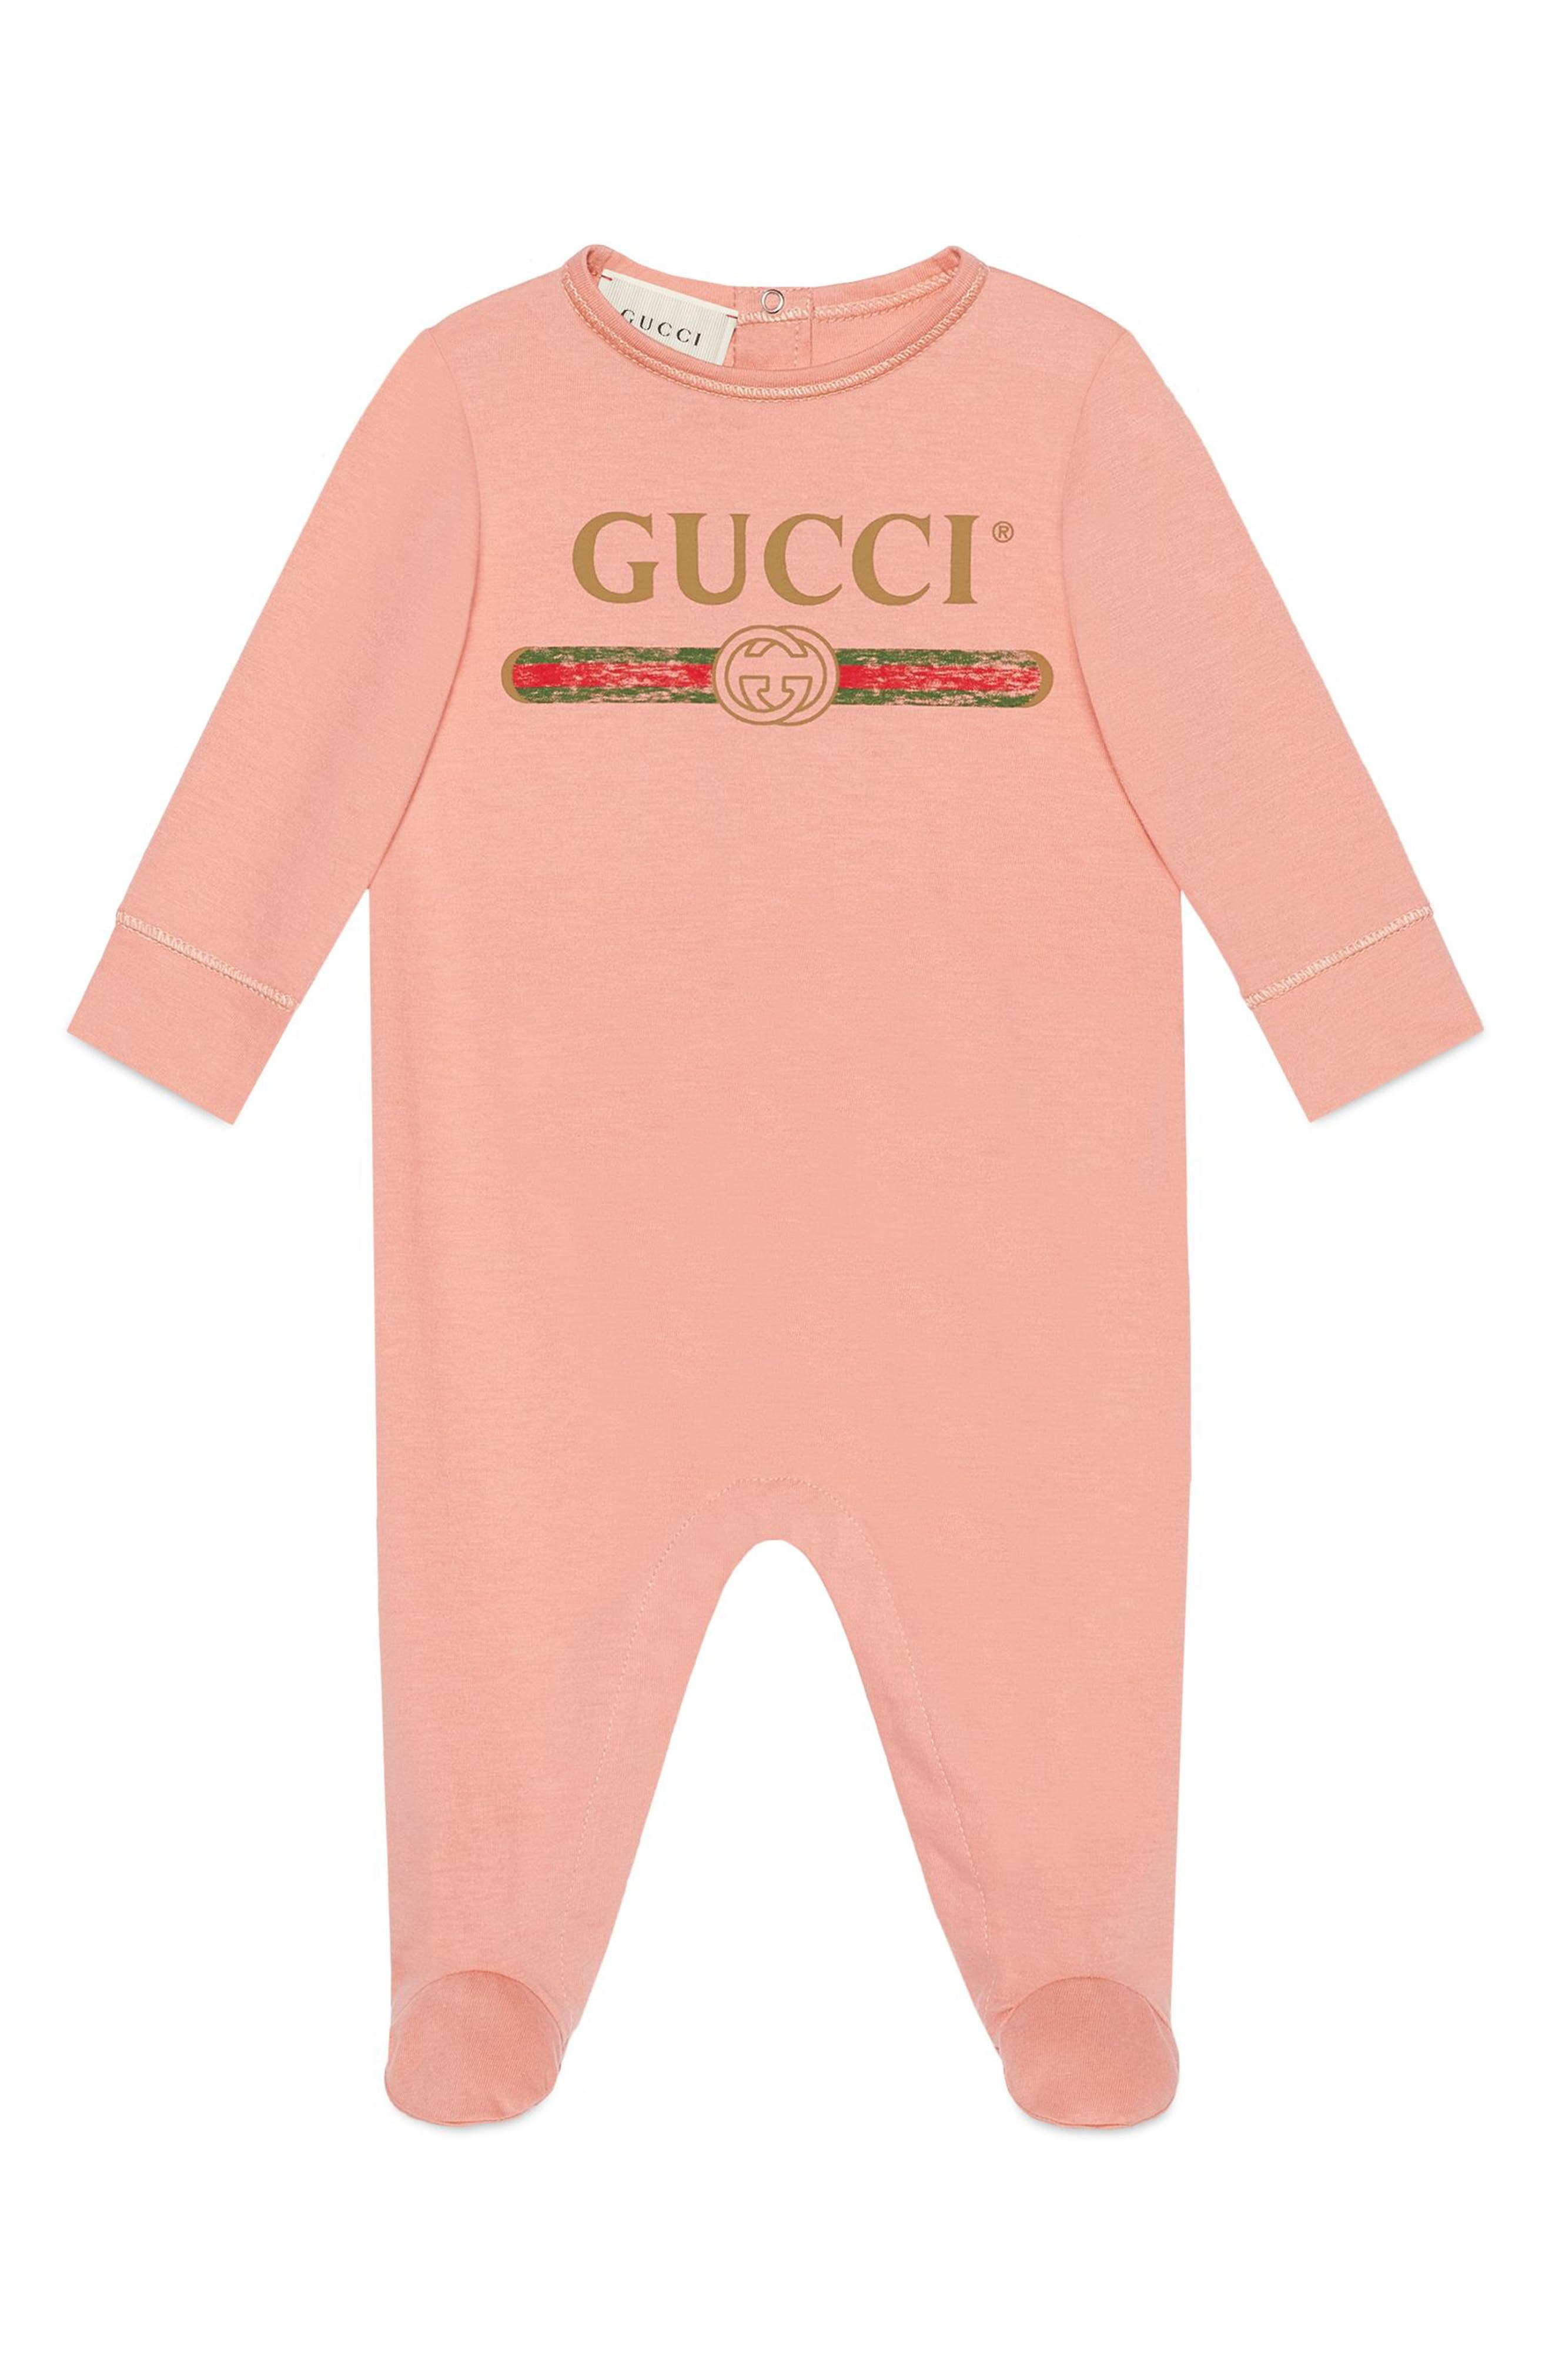 GUCCI Logo Cotton Footie, Main, color, PINK MULTI